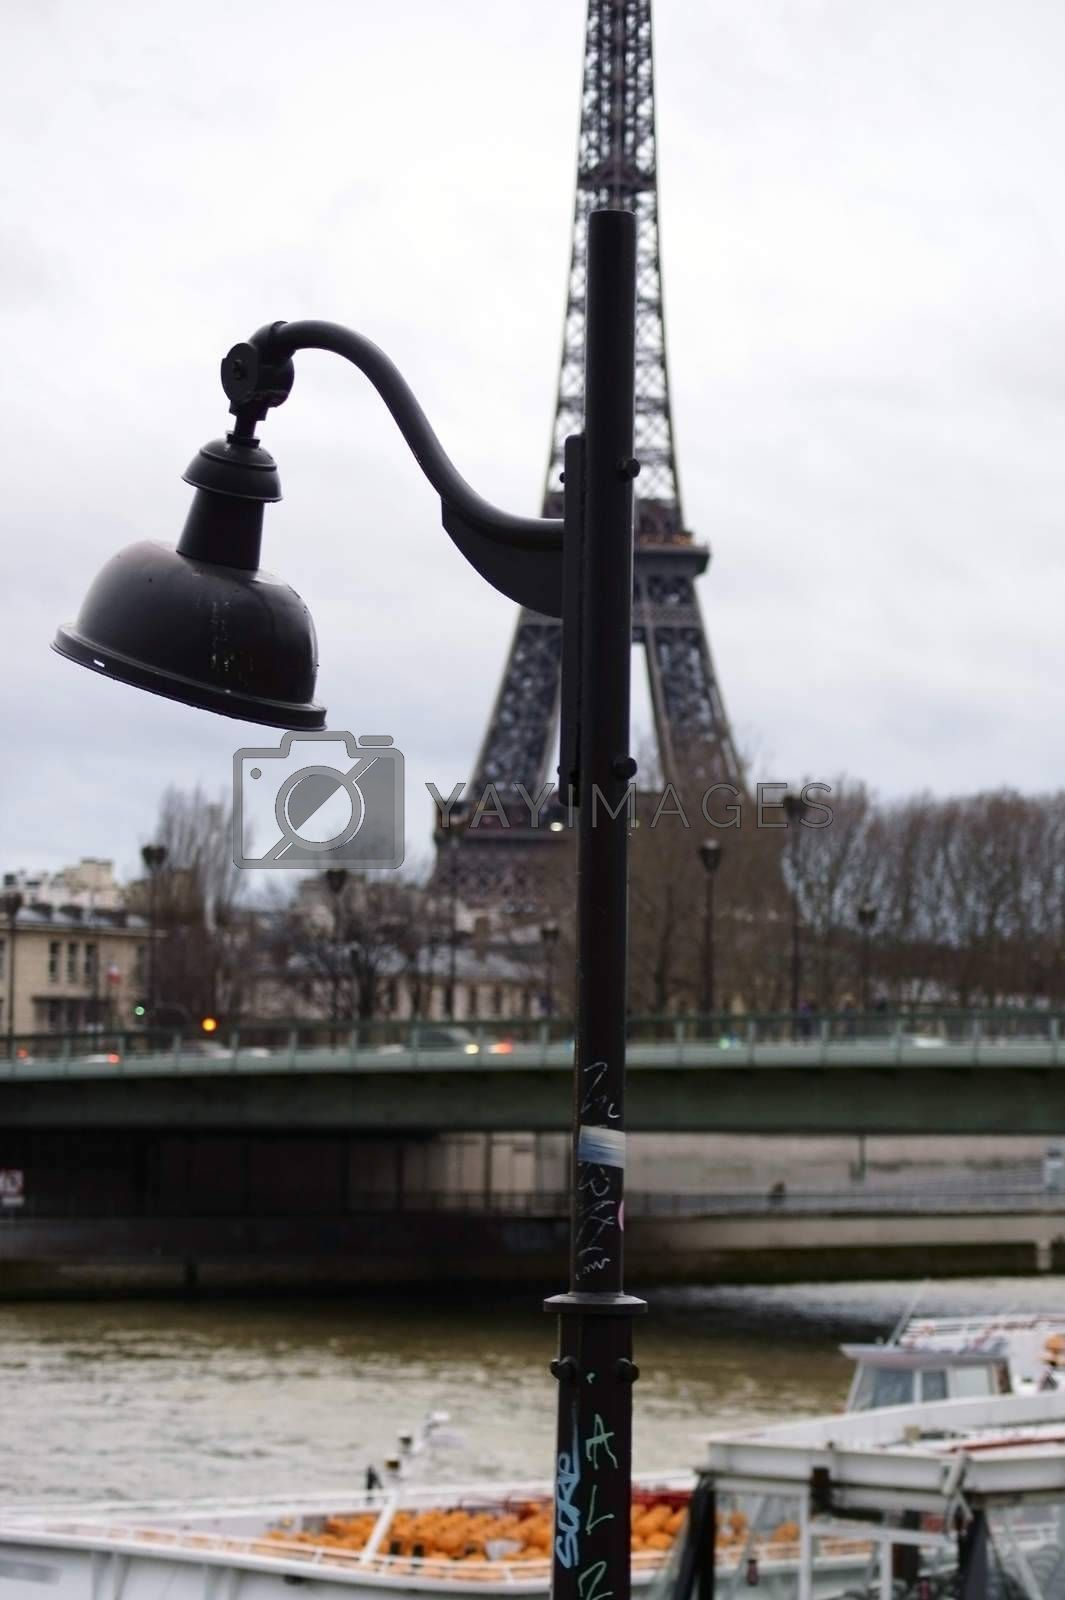 A boat for boat trips is located behind a lantern on the banks of the river Seine with the Eiffel Tower in the background.